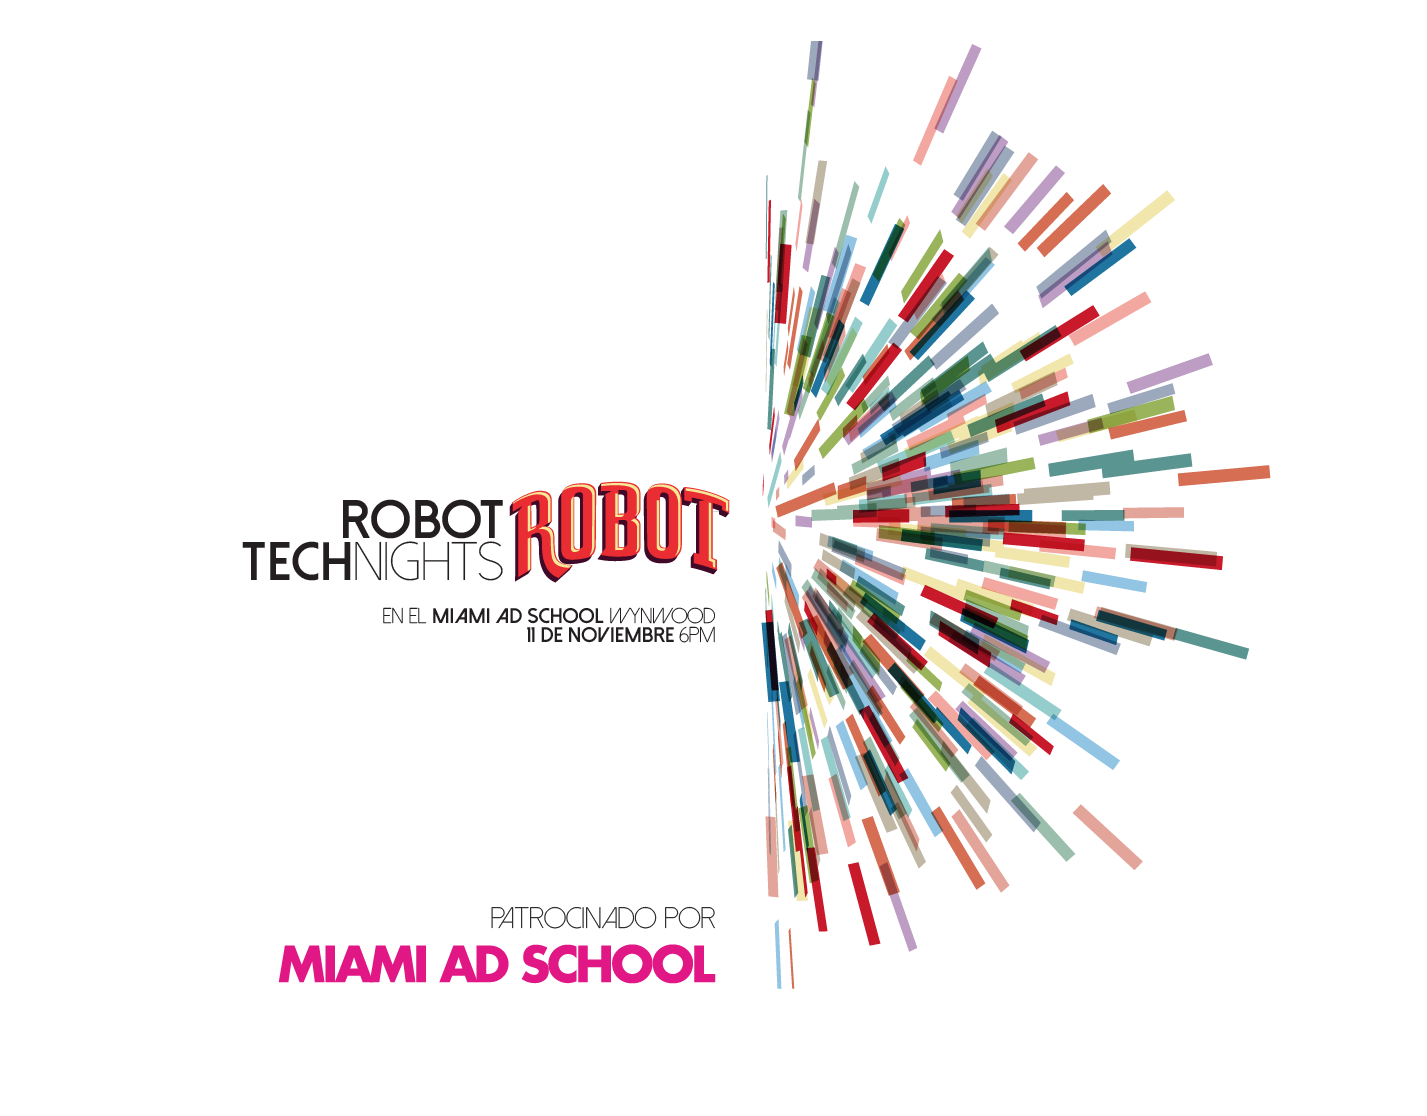 Robot Technights en el Miami Ad School